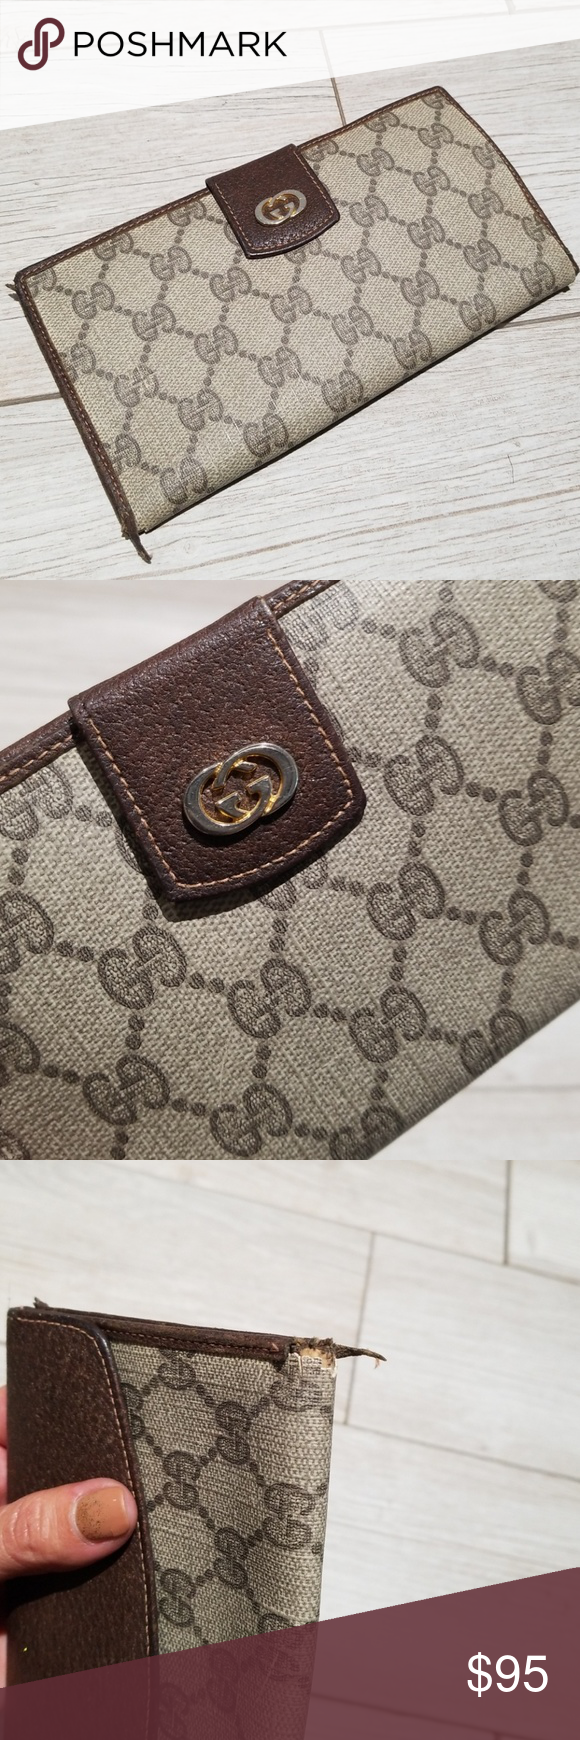 f95f218e6bb Vintage GUCCI wallet brown with GG monogram logo Cute and simple Authentic  GUCCI wallet With serial number inside Inside looks never used but the  outside ...